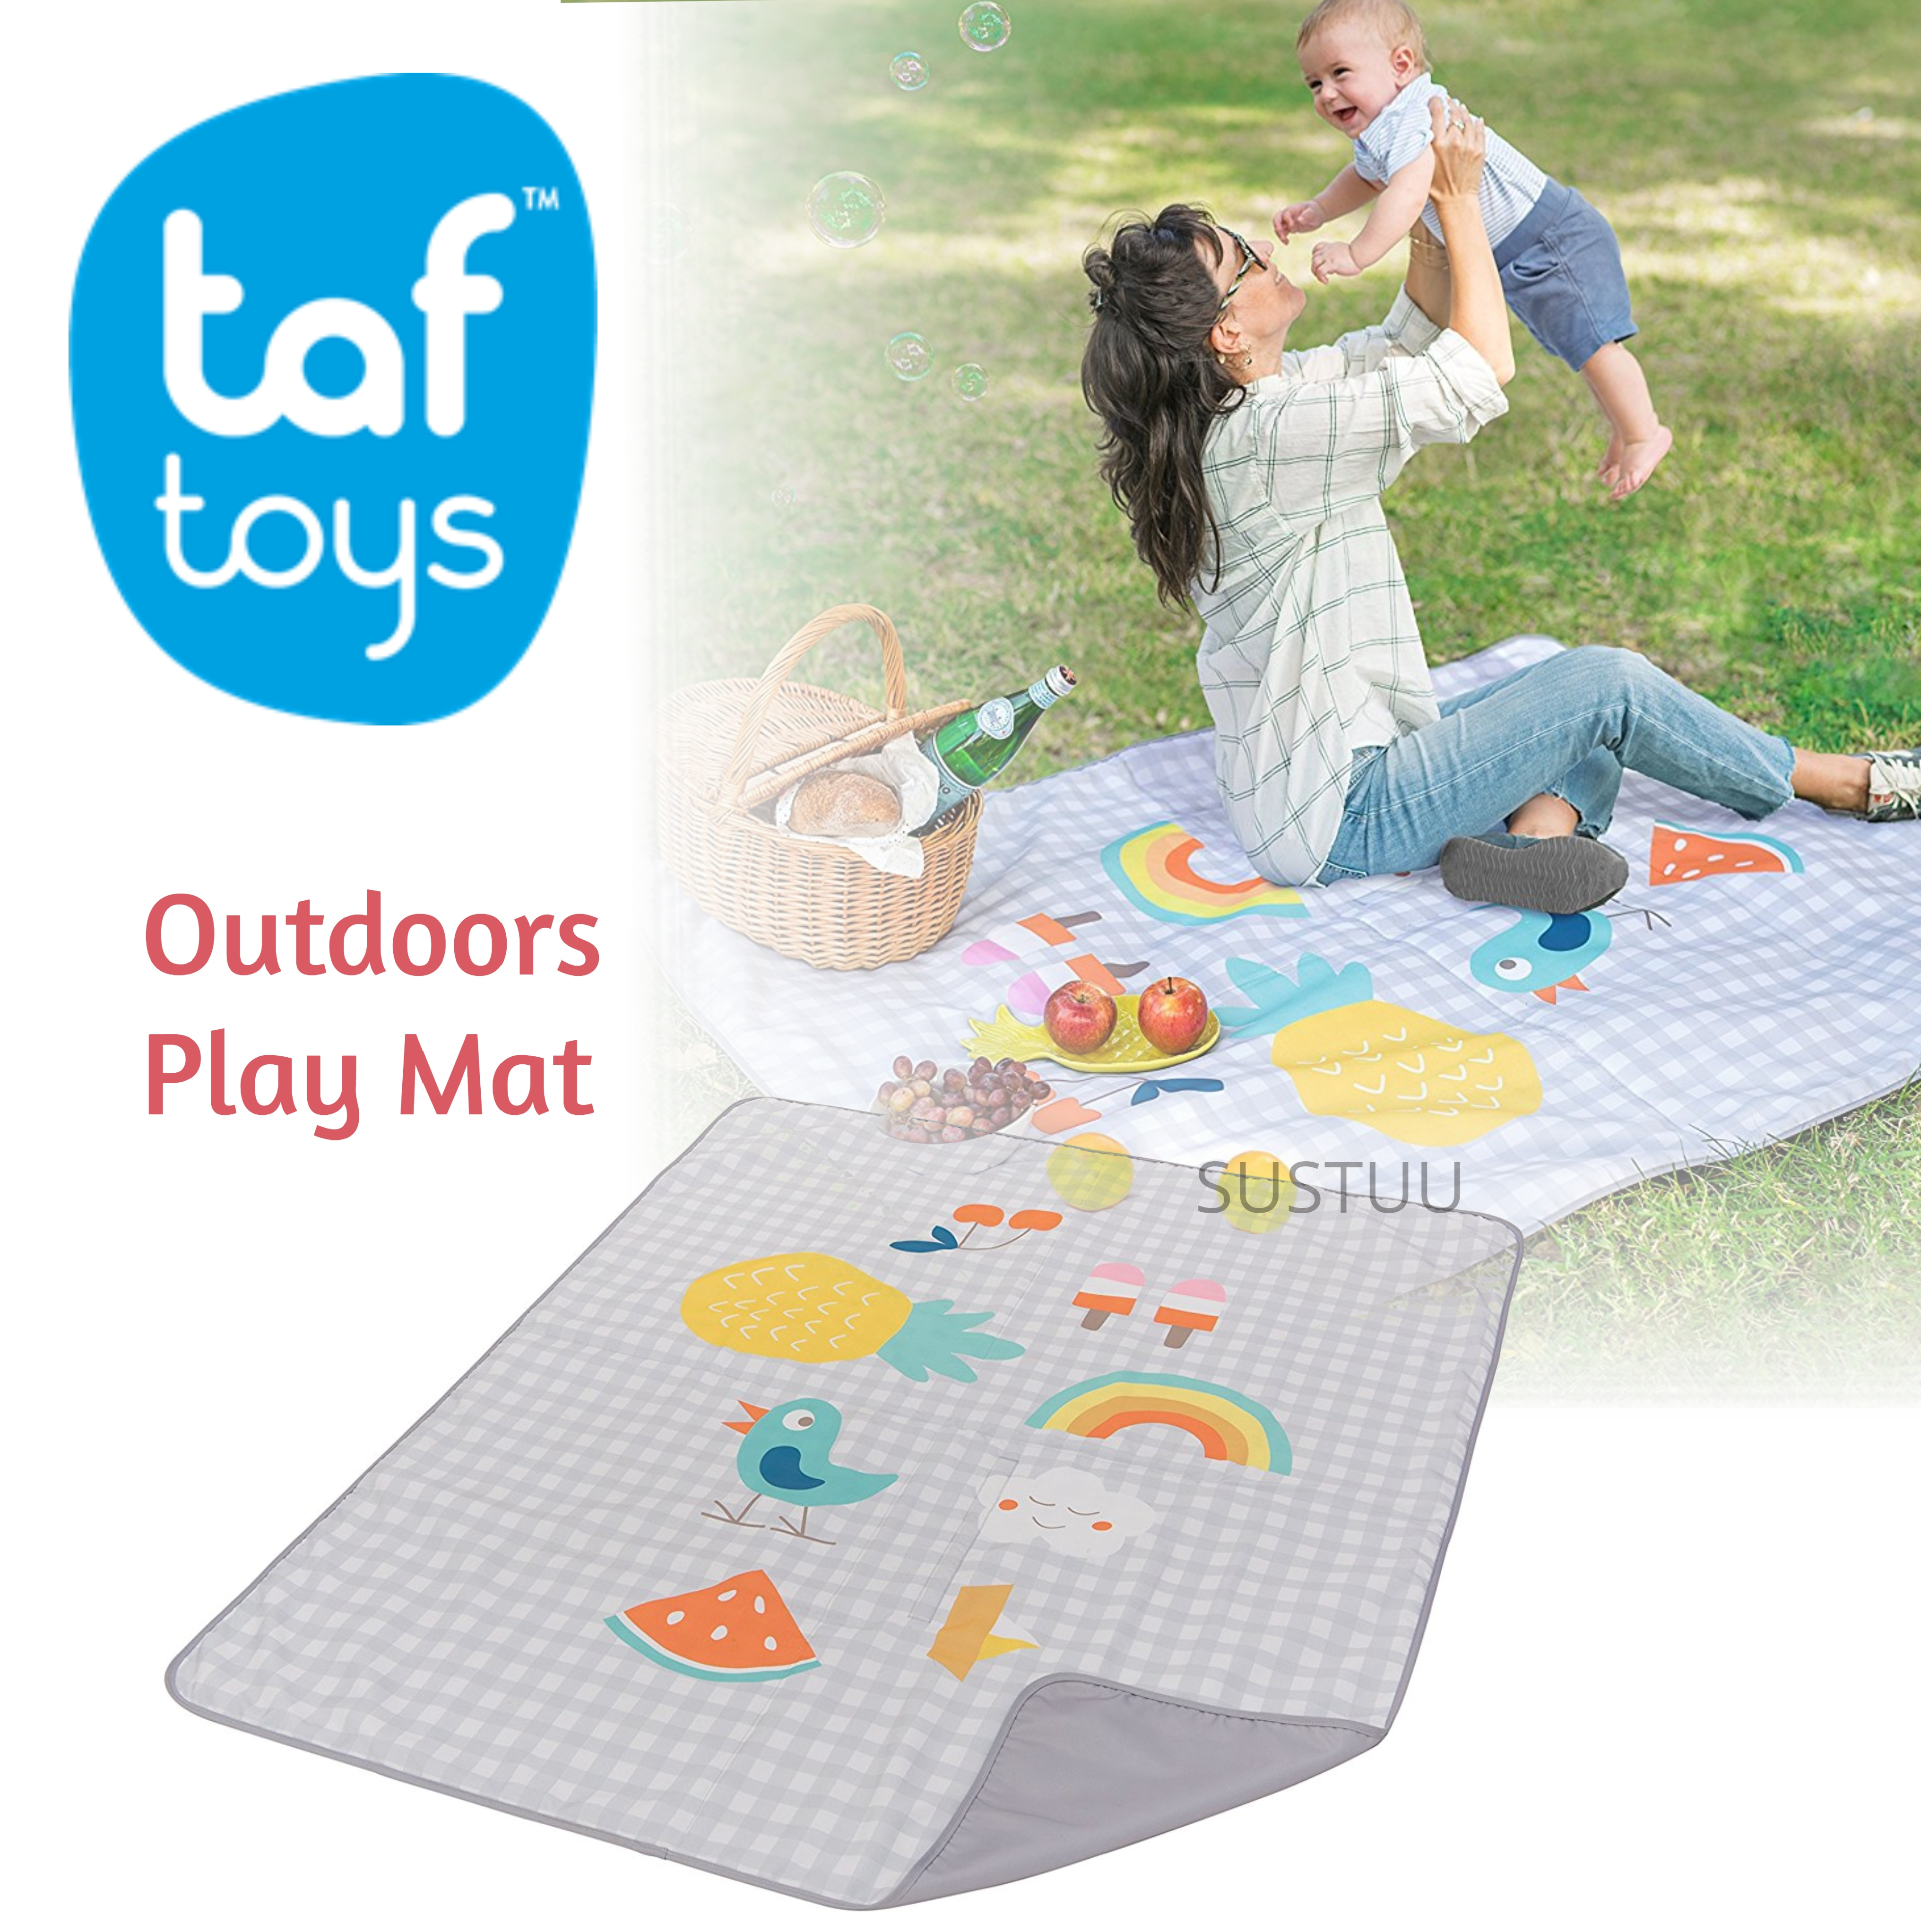 Taf Toys Outdoors Play Mat Toddler Infant Outdoor Playing Activity Rug Bed New Sustuu